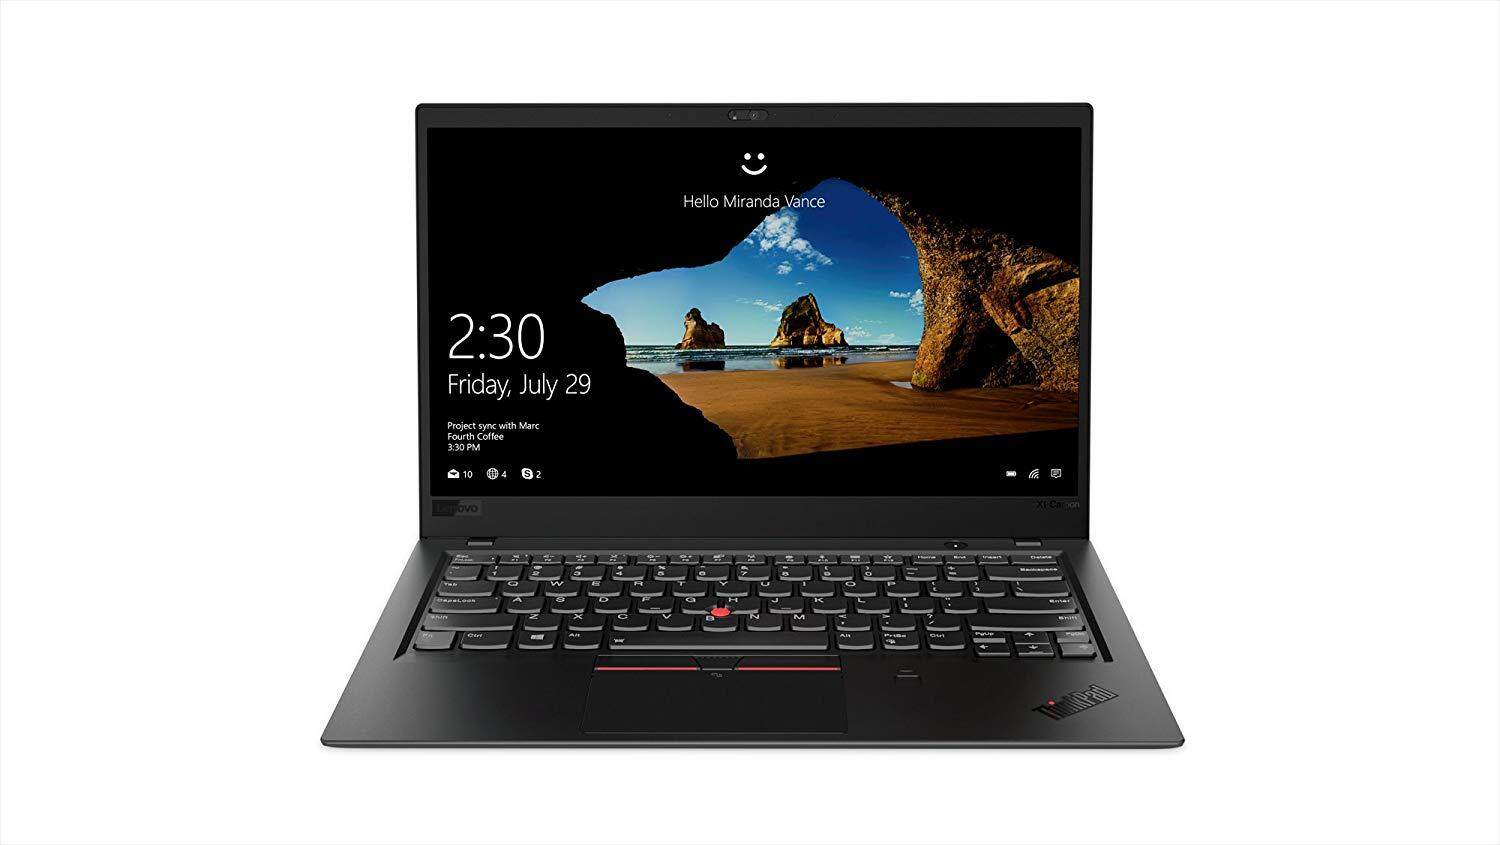 Lenovo ThinkPad X1 Carbon Laptop, High Performance Windows Laptop, (Intel Core i7, 16 GB RAM, 512GB SSD, Windows 10 Pro) Malaysia